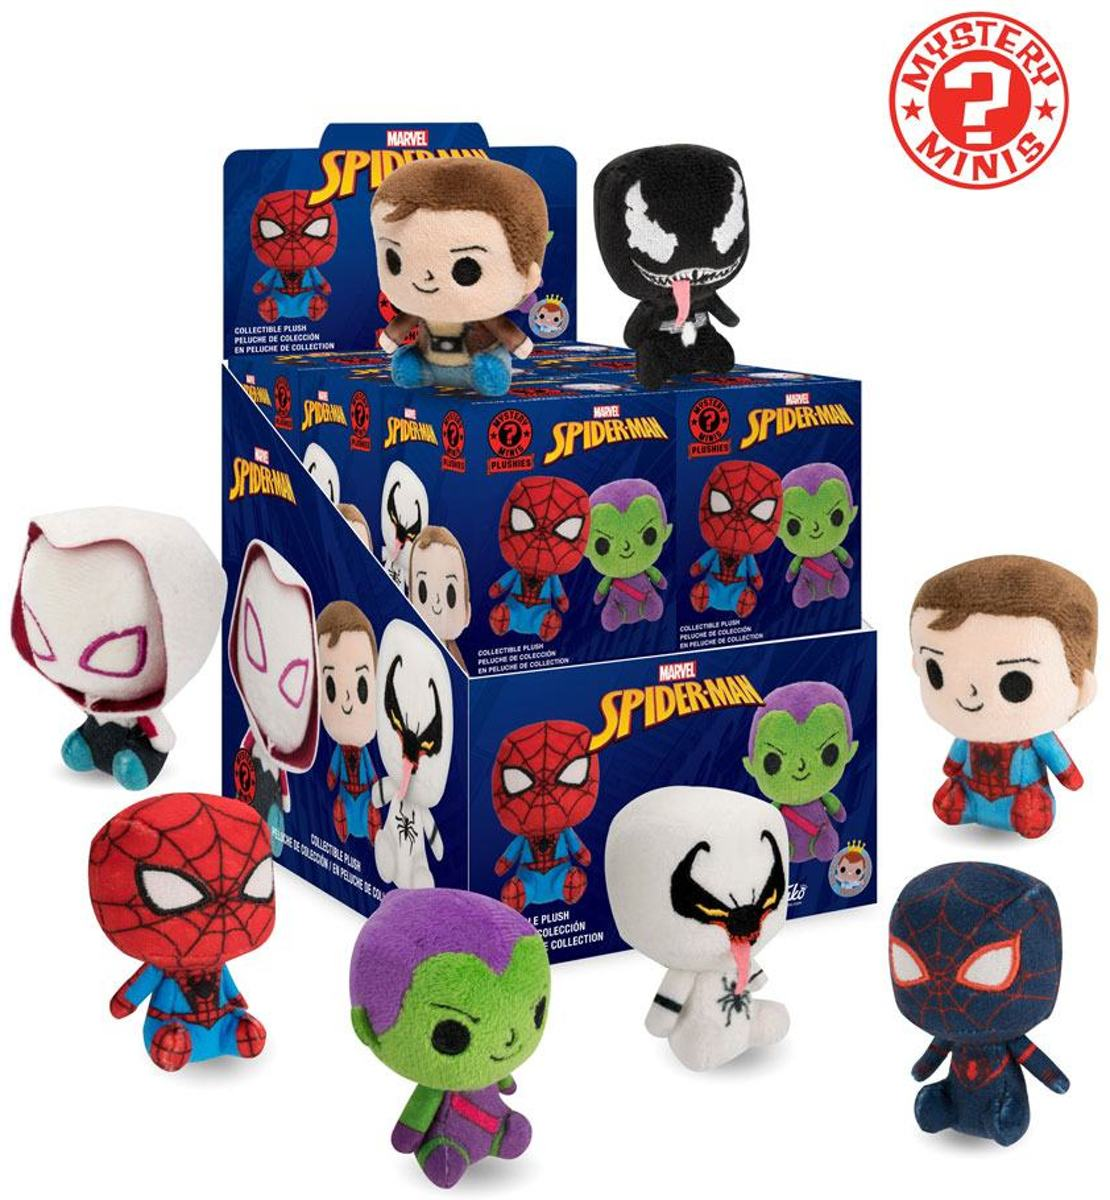 Spiderman Mystery plushies - 1 doosje